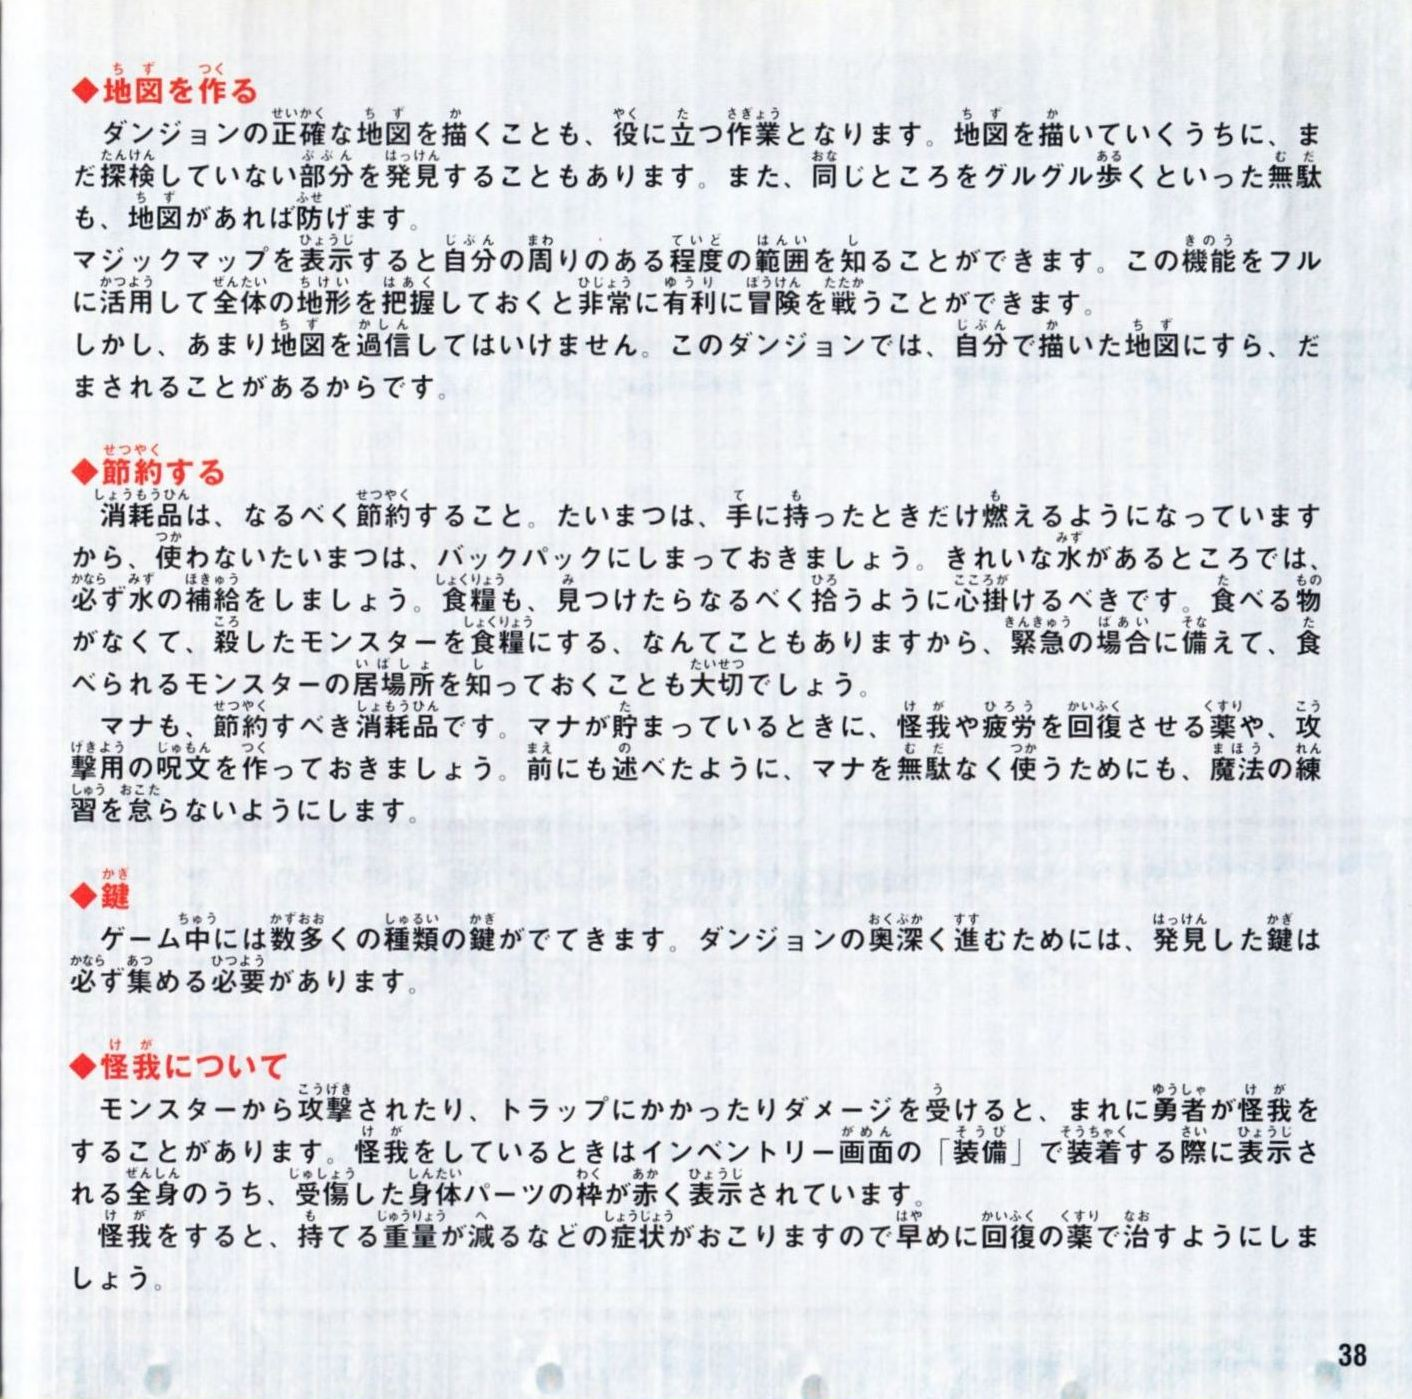 Game - Dungeon Master Nexus - JP - Sega Saturn - Booklet - Page 039 - Scan